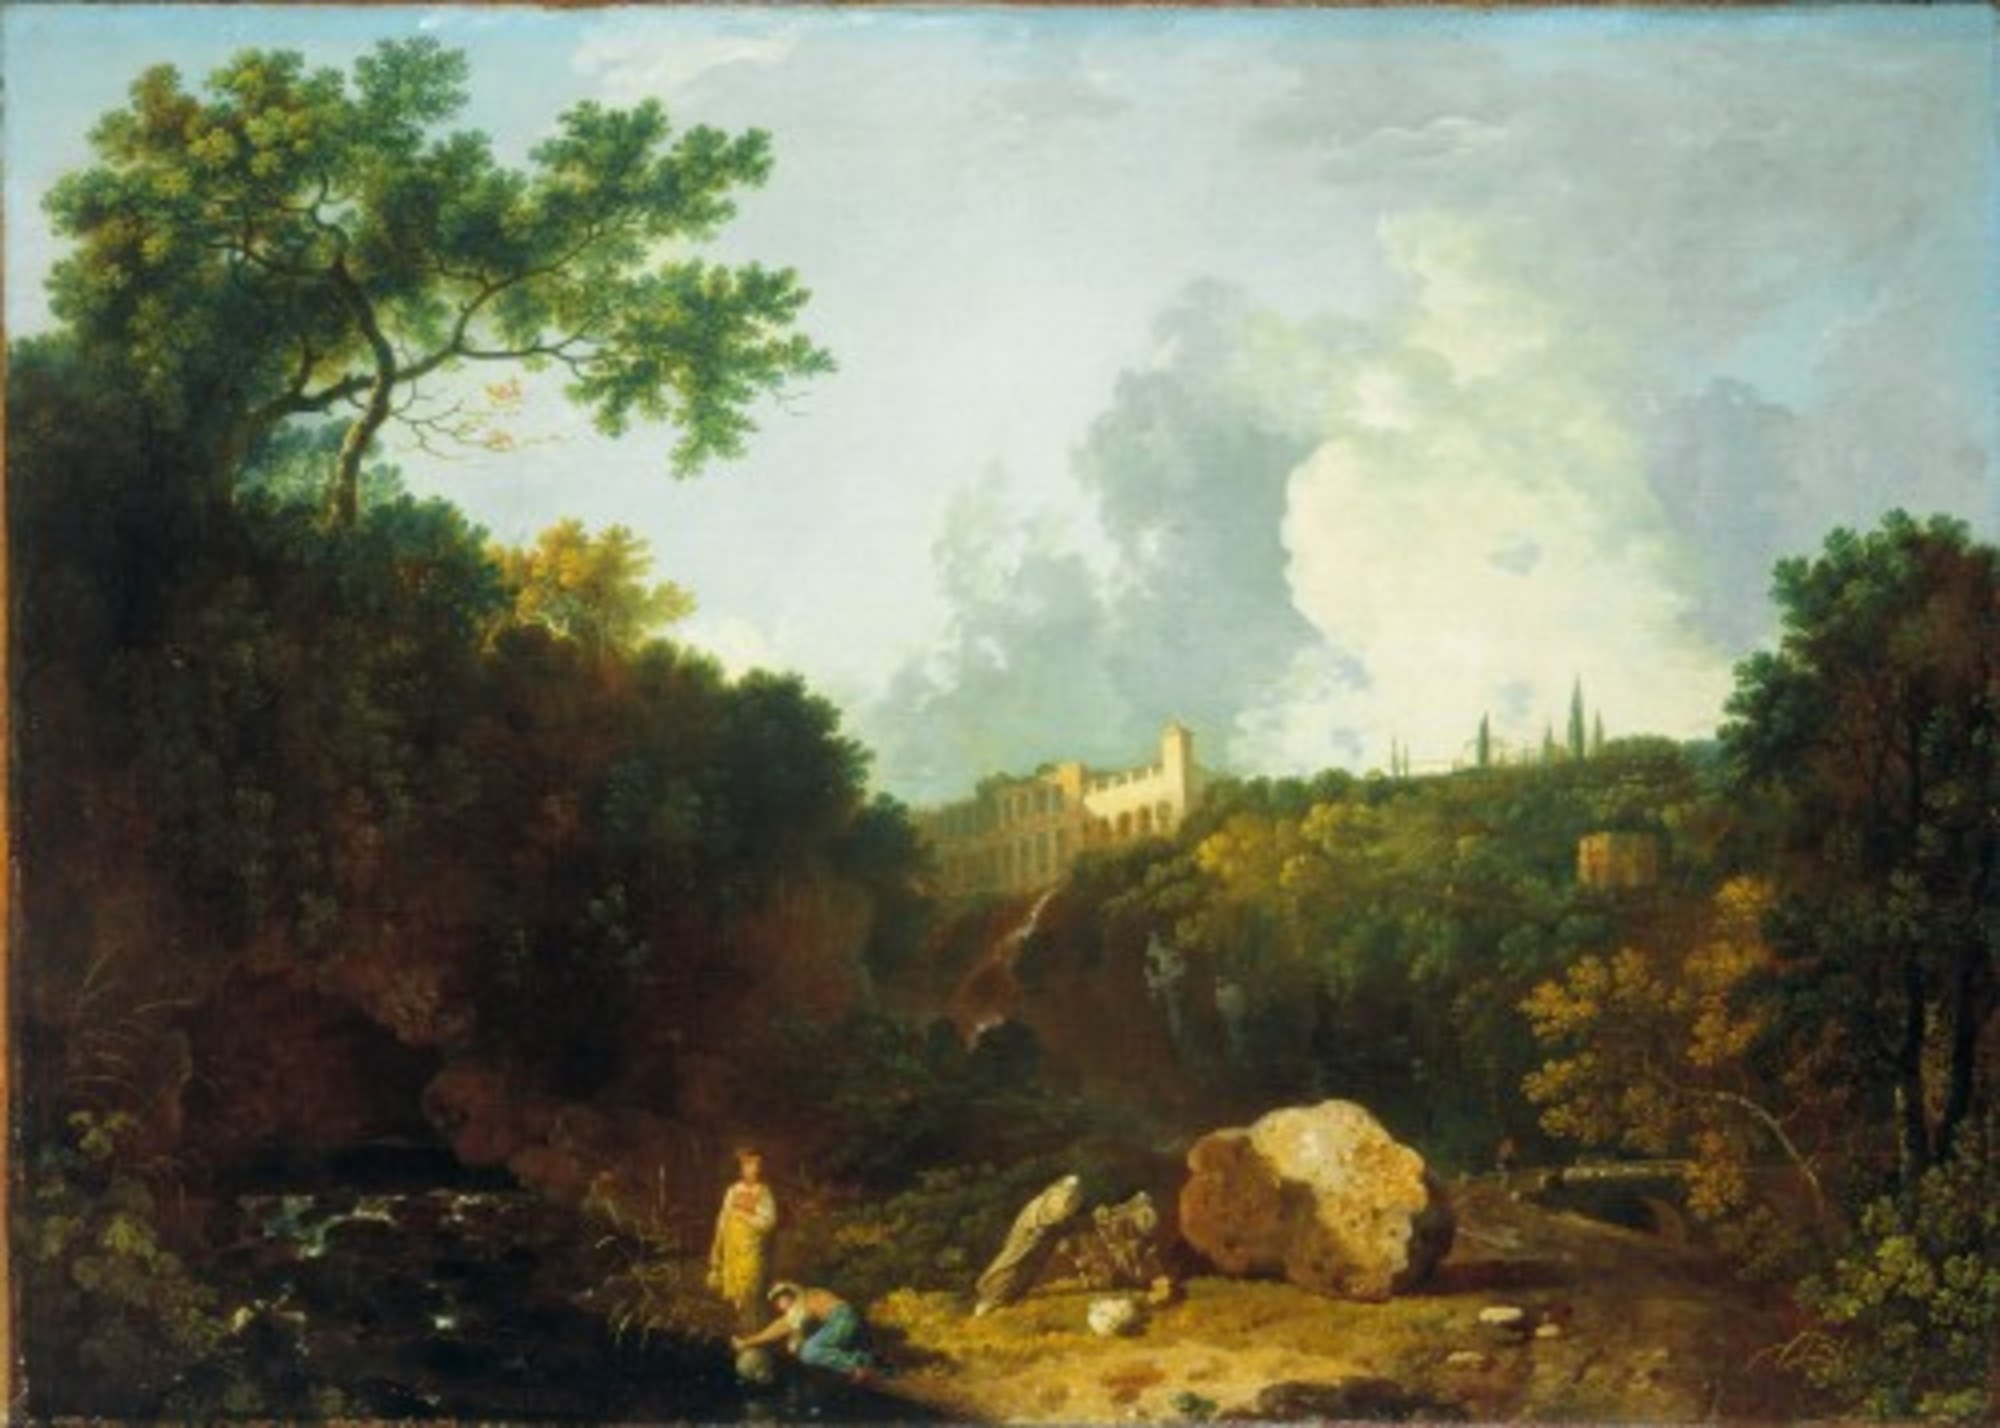 Richard-Wilson---Distant-View-of-Maecenas-Villa-Tivoli-Tate-Britain.jpg